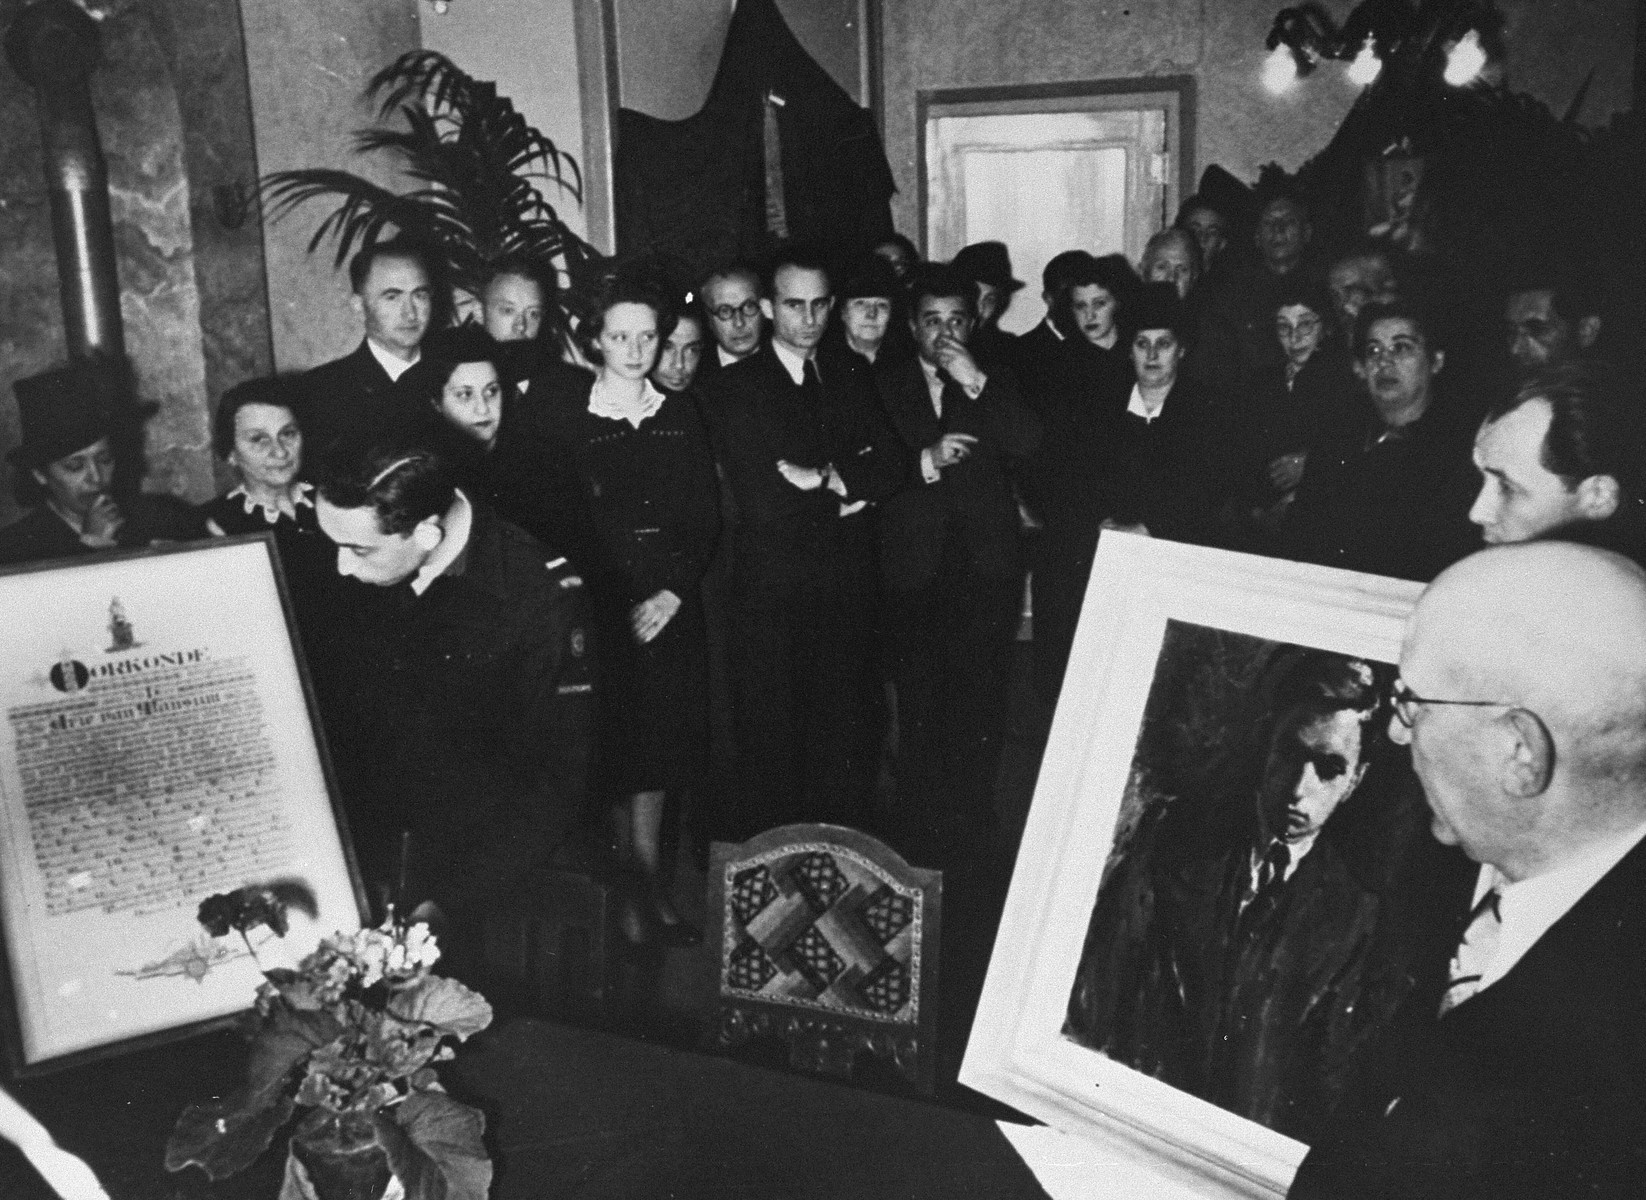 At a postwar ceremony in Holland, Jews who were rescued by Arie van Mansum during the German occupation, present him with a portrait and a certificate listing the names of those he saved.